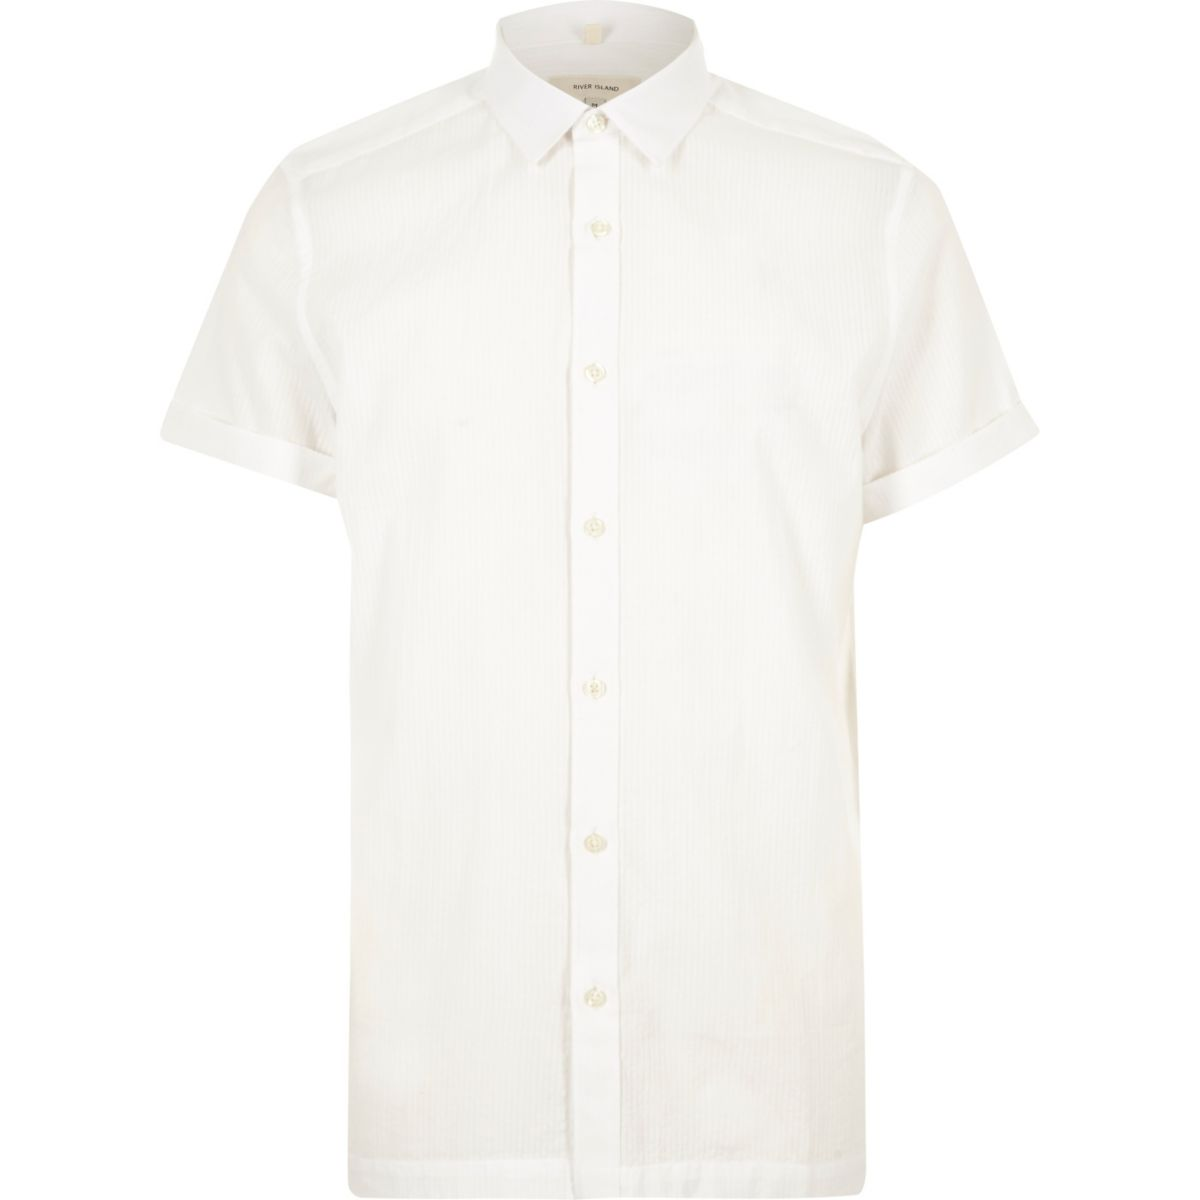 White seersucker short sleeve shirt shirts sale men for Mens short sleeve seersucker shirts